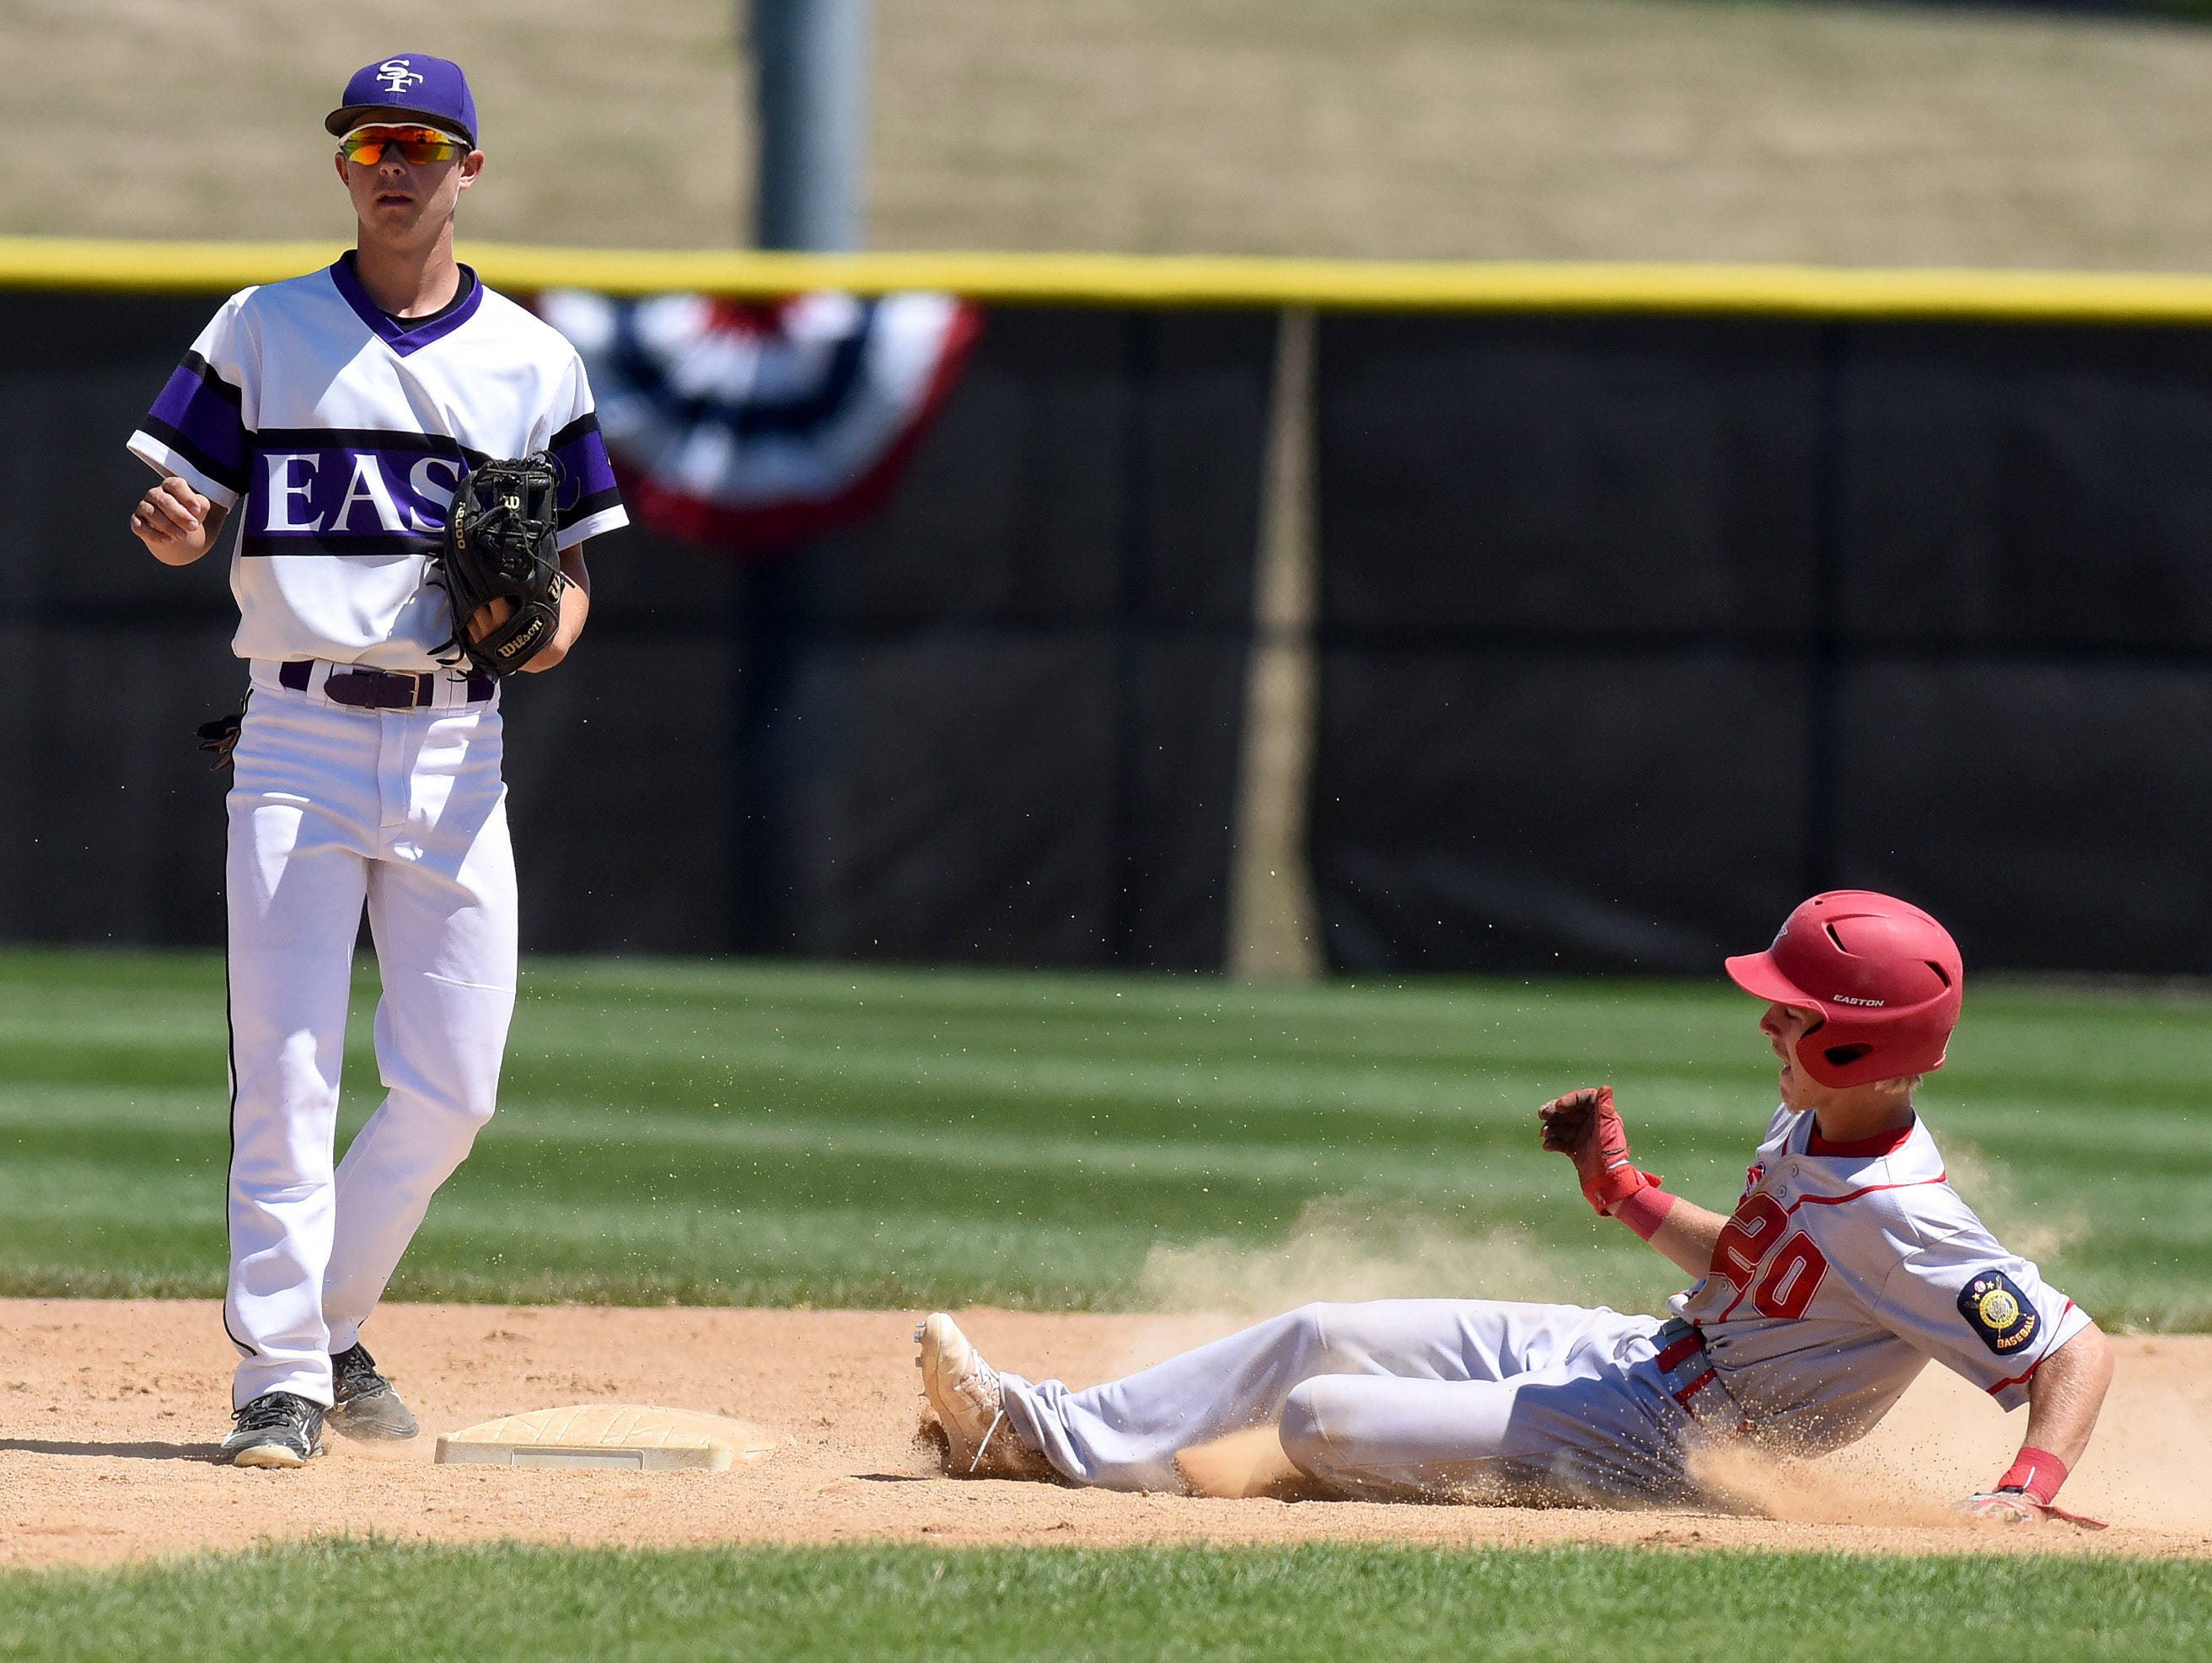 Rapid City Post 320's Connor Burgess slides into second base while Sioux Falls East Post 15's Matt Hedeen waits for the ball during the American Legion Class A Baseball State Tournament at Harmodon Park on Saturday afternoon.